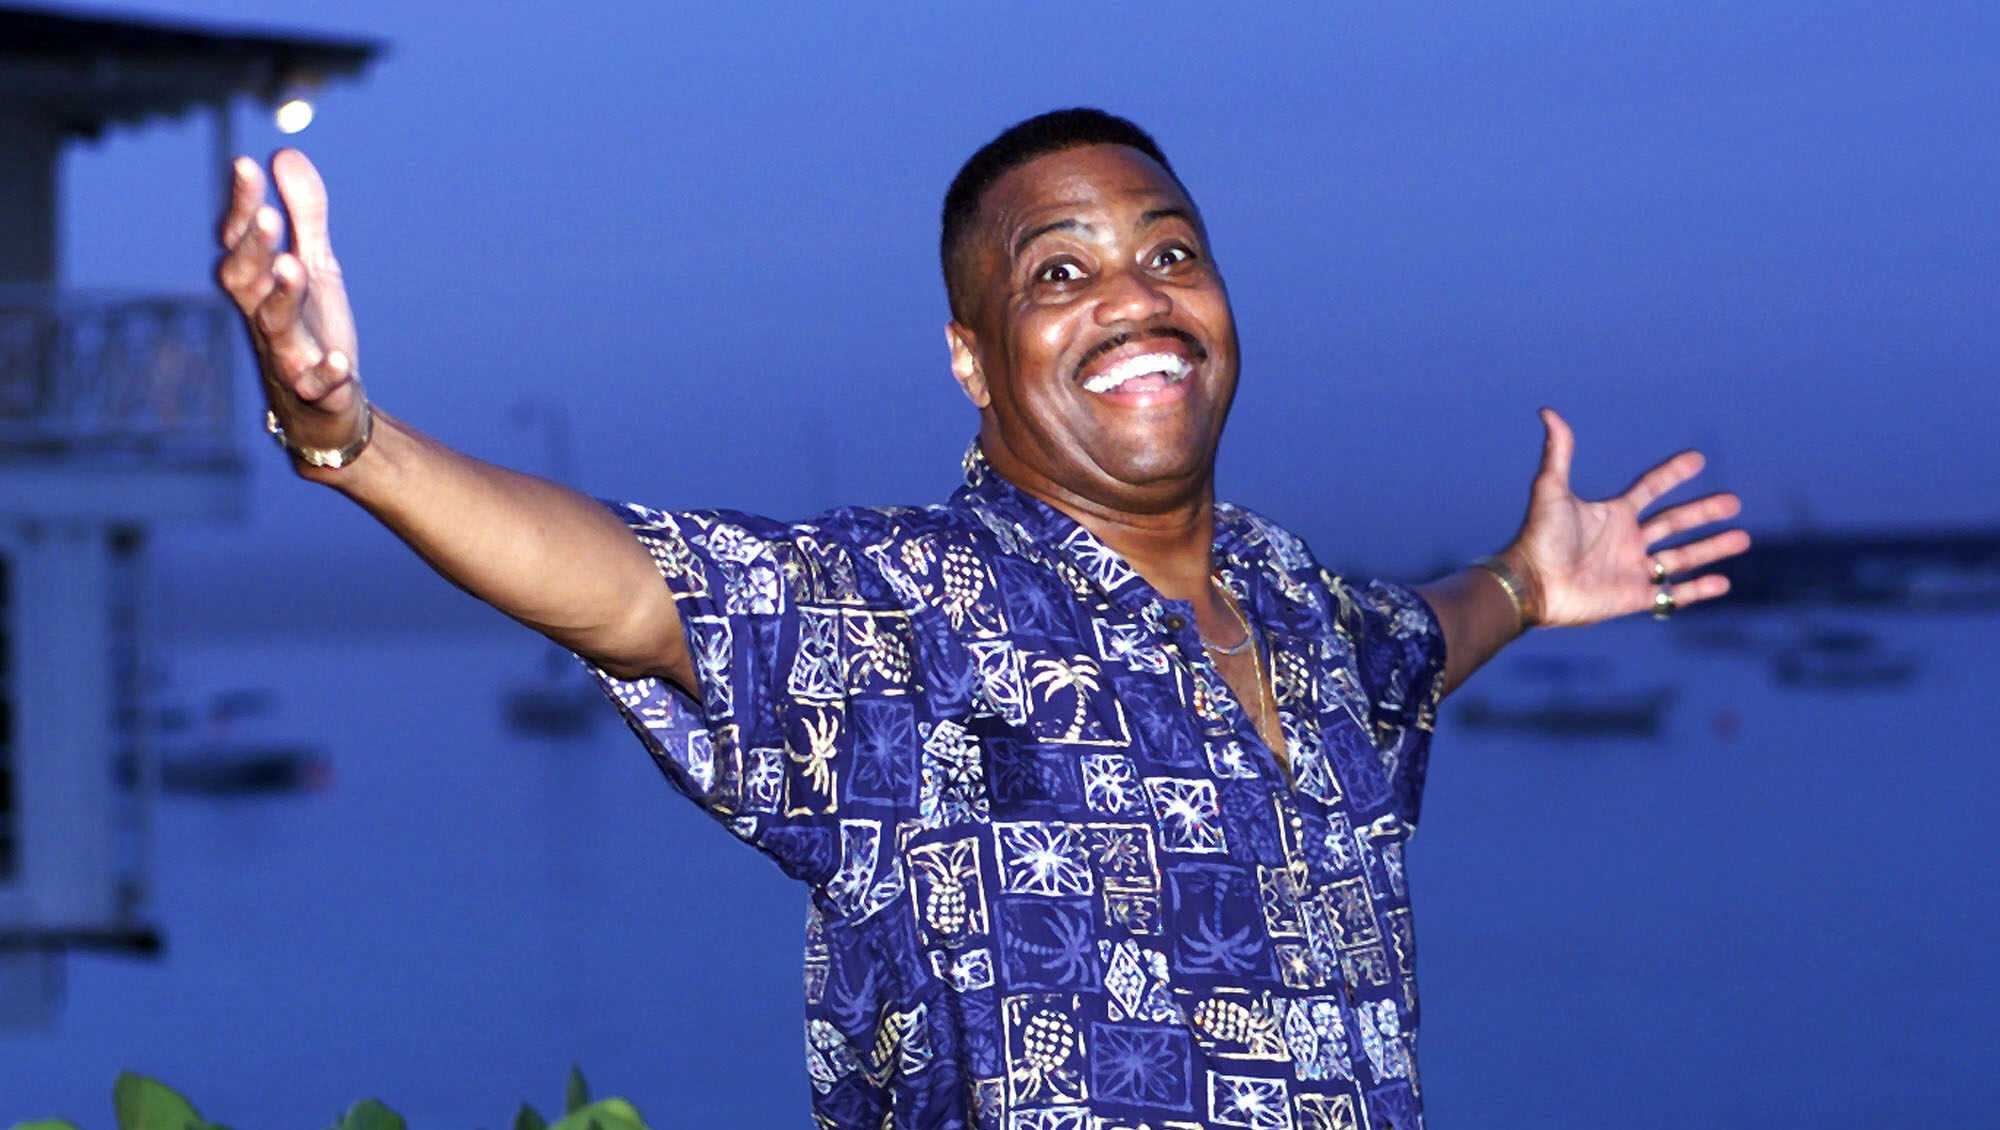 Cuba Gooding Sr. lead vocalist of the legendary r&b/pop group The Main Ingredient, and father of Oscar winning actor Cuba Gooding Jr., gestures during an interview in Bridgetown, Barbados, Wednesday, Aug. 18, 1999.